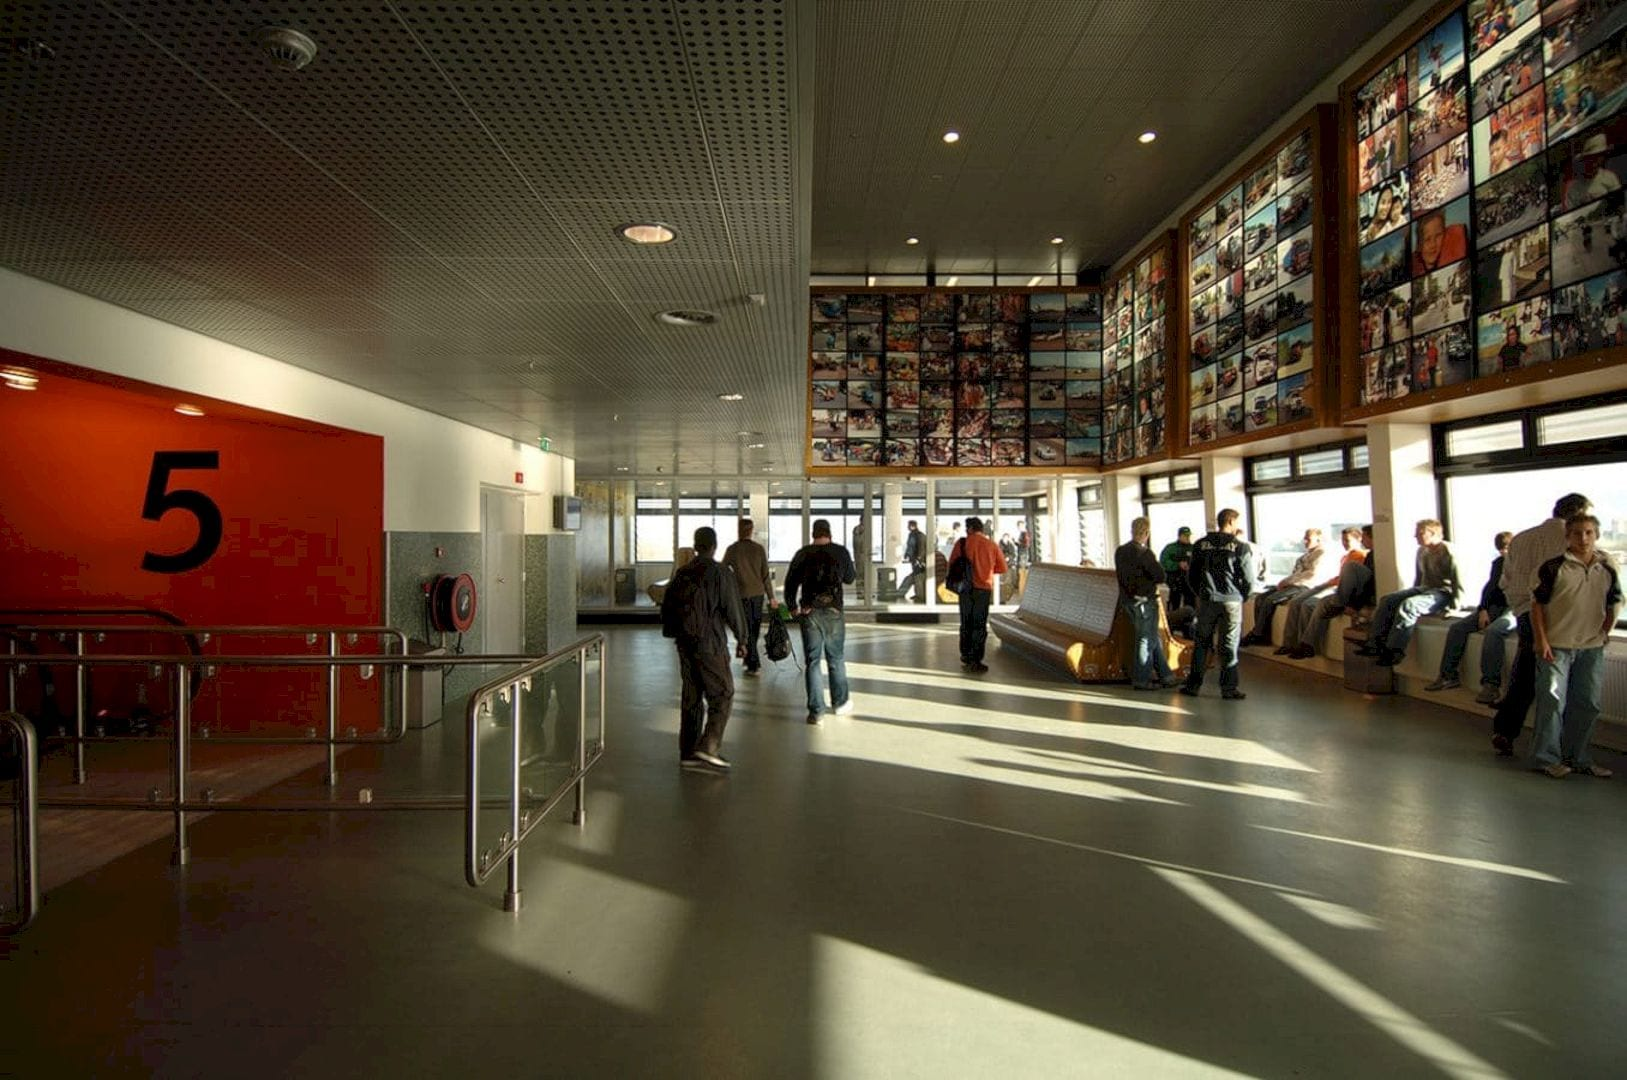 Shipping And Transport College By Neutelings Riedijk Architects 4